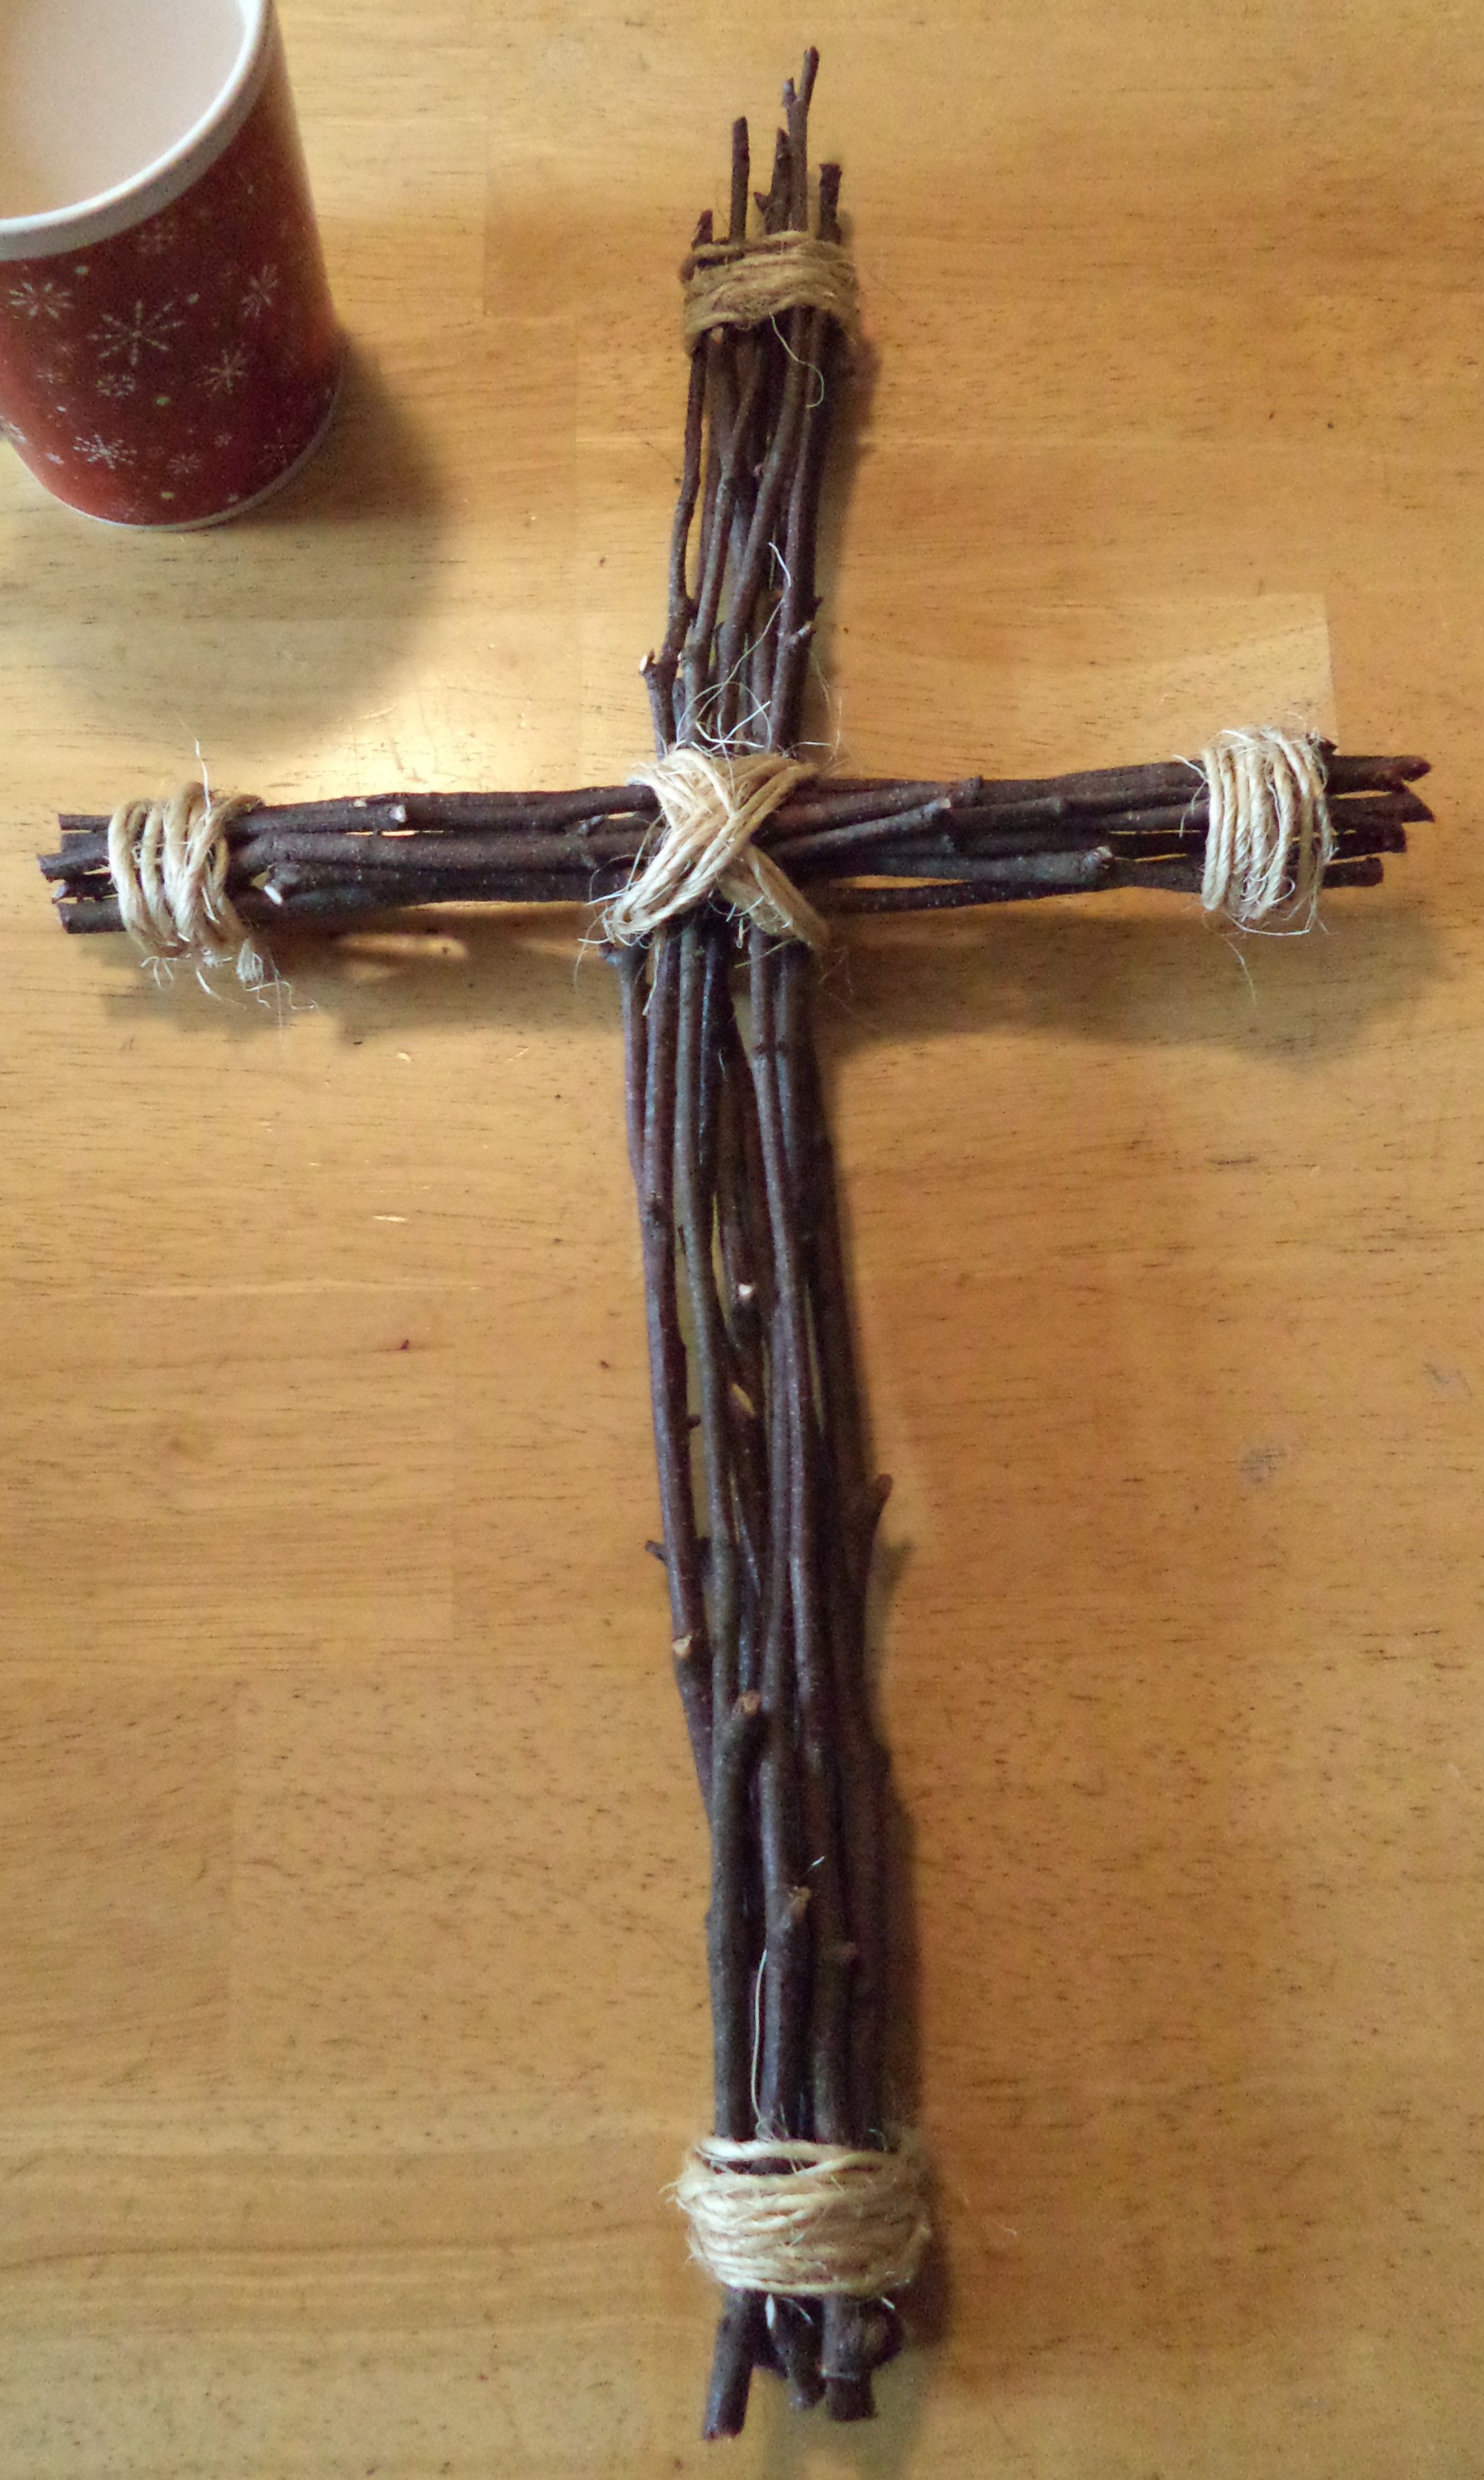 Twig Stick Cross Rustic DecorTwigs Sticks And Twine Crafts Holidays Christmas Easter DIY Nailed It